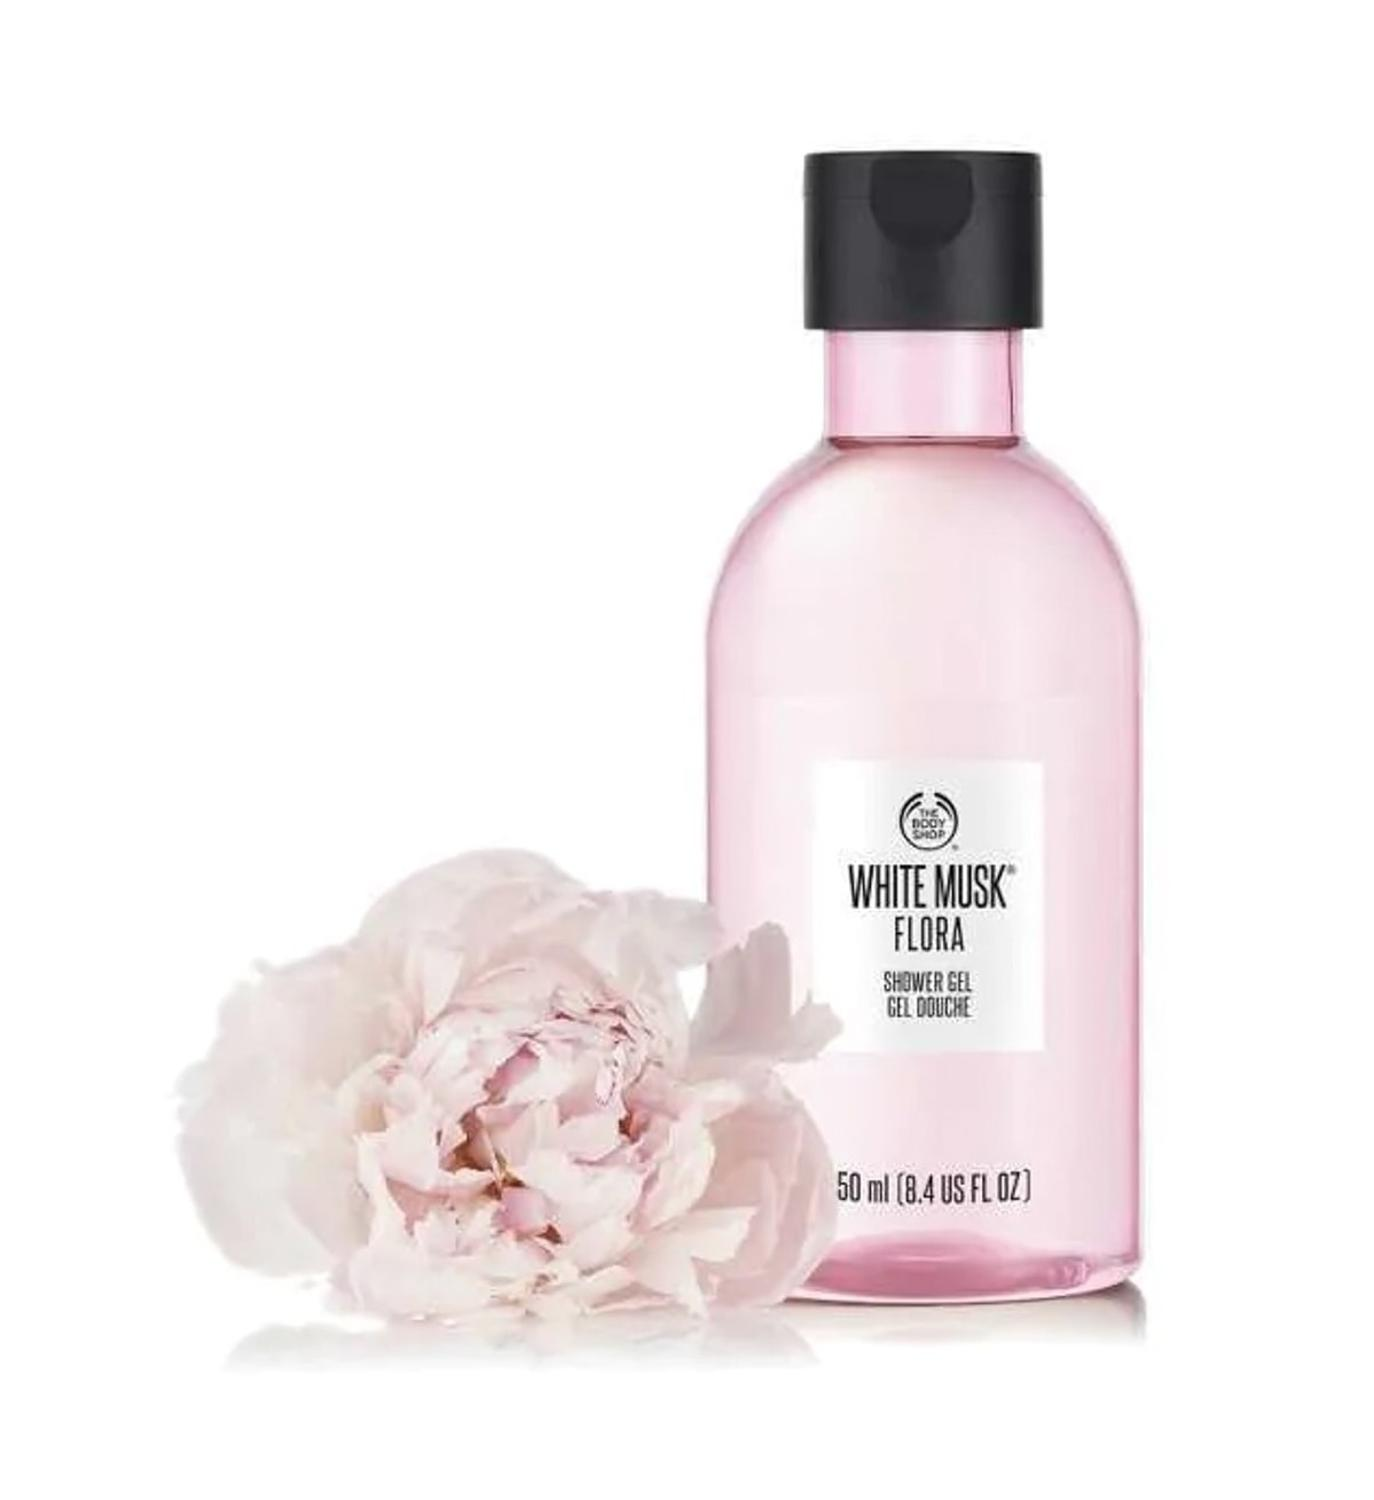 The Body Shop White Musk Flora Shower Gel Cream Body Washer 250 Ml Moisturizing Nourishing Dry Skin Fresh Smell Soap Free Bath